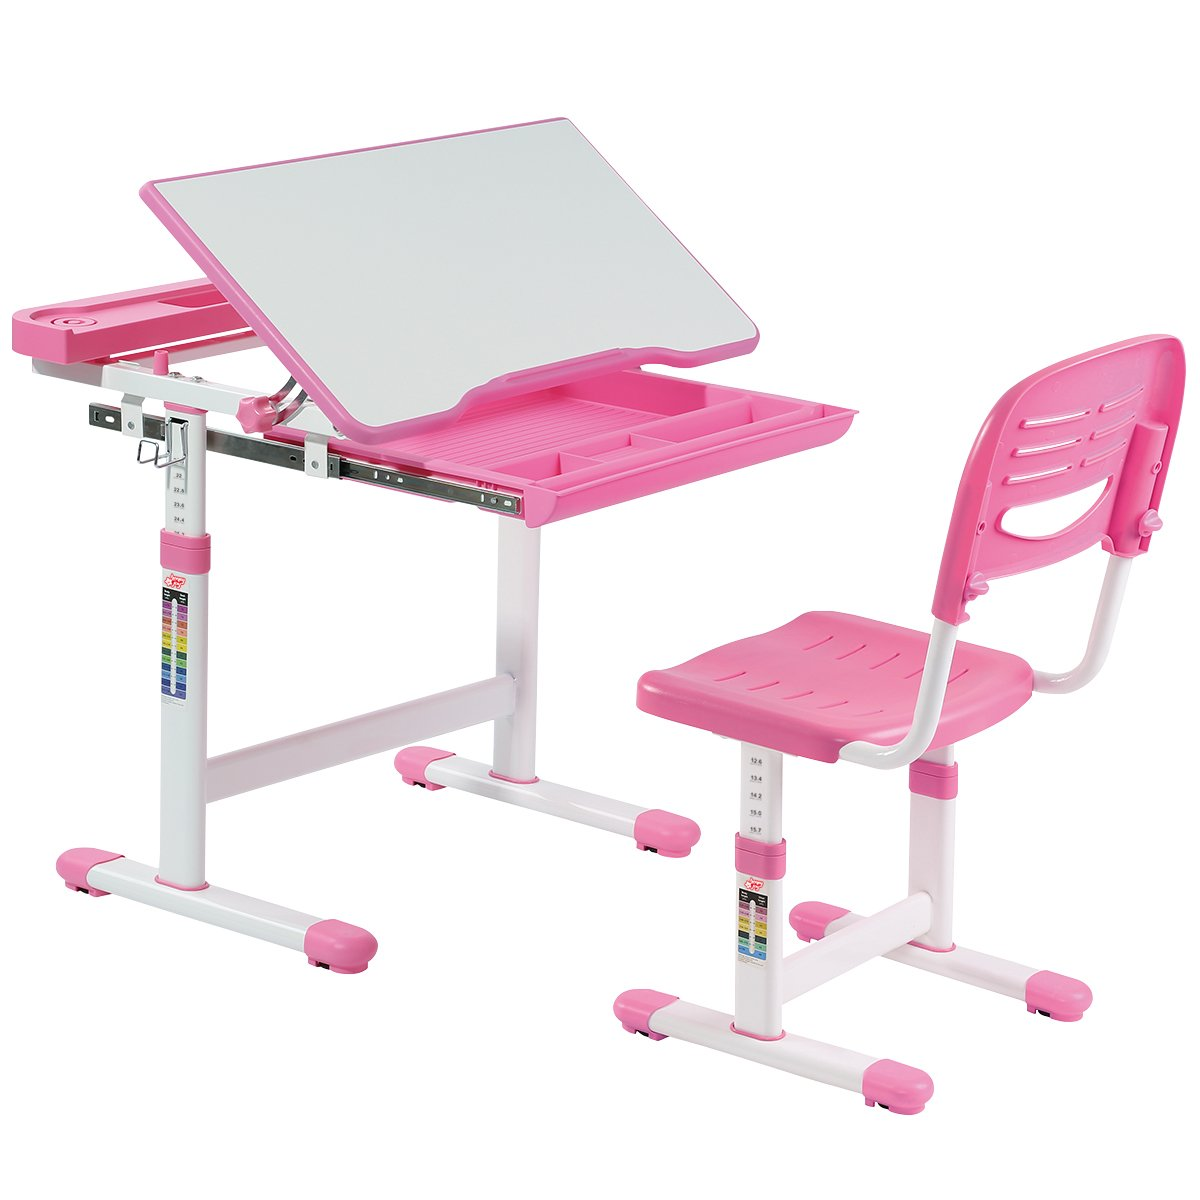 Costzon Kids Desk and Chair Set, 0-40 Degree Table Top Adjustable Tilt for Painting, Spacious Pull Out Drawer, Height Adjustable, School Study Workstation for Children (Pink)